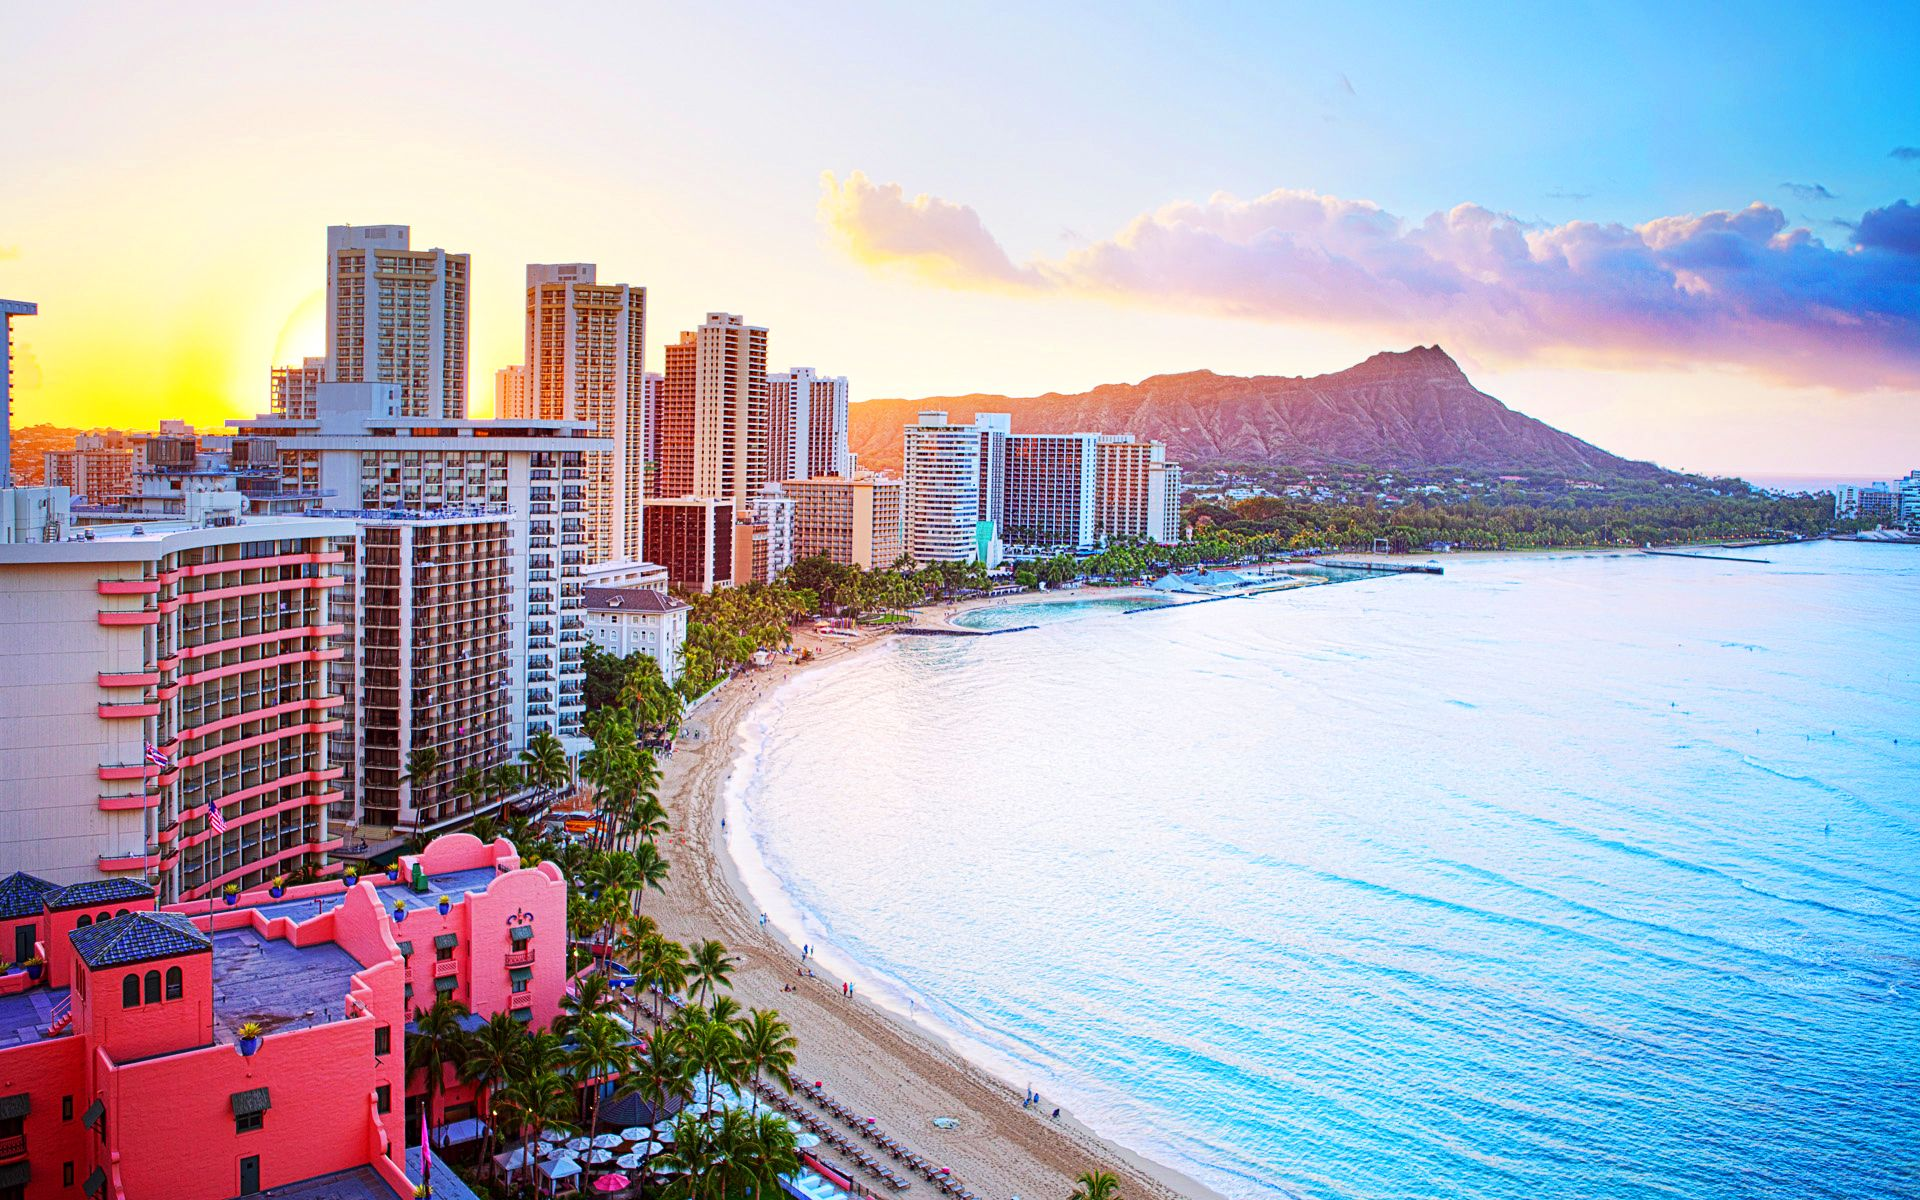 wallpaper waikiki beach hawaii vacation Pinterest 1920x1200